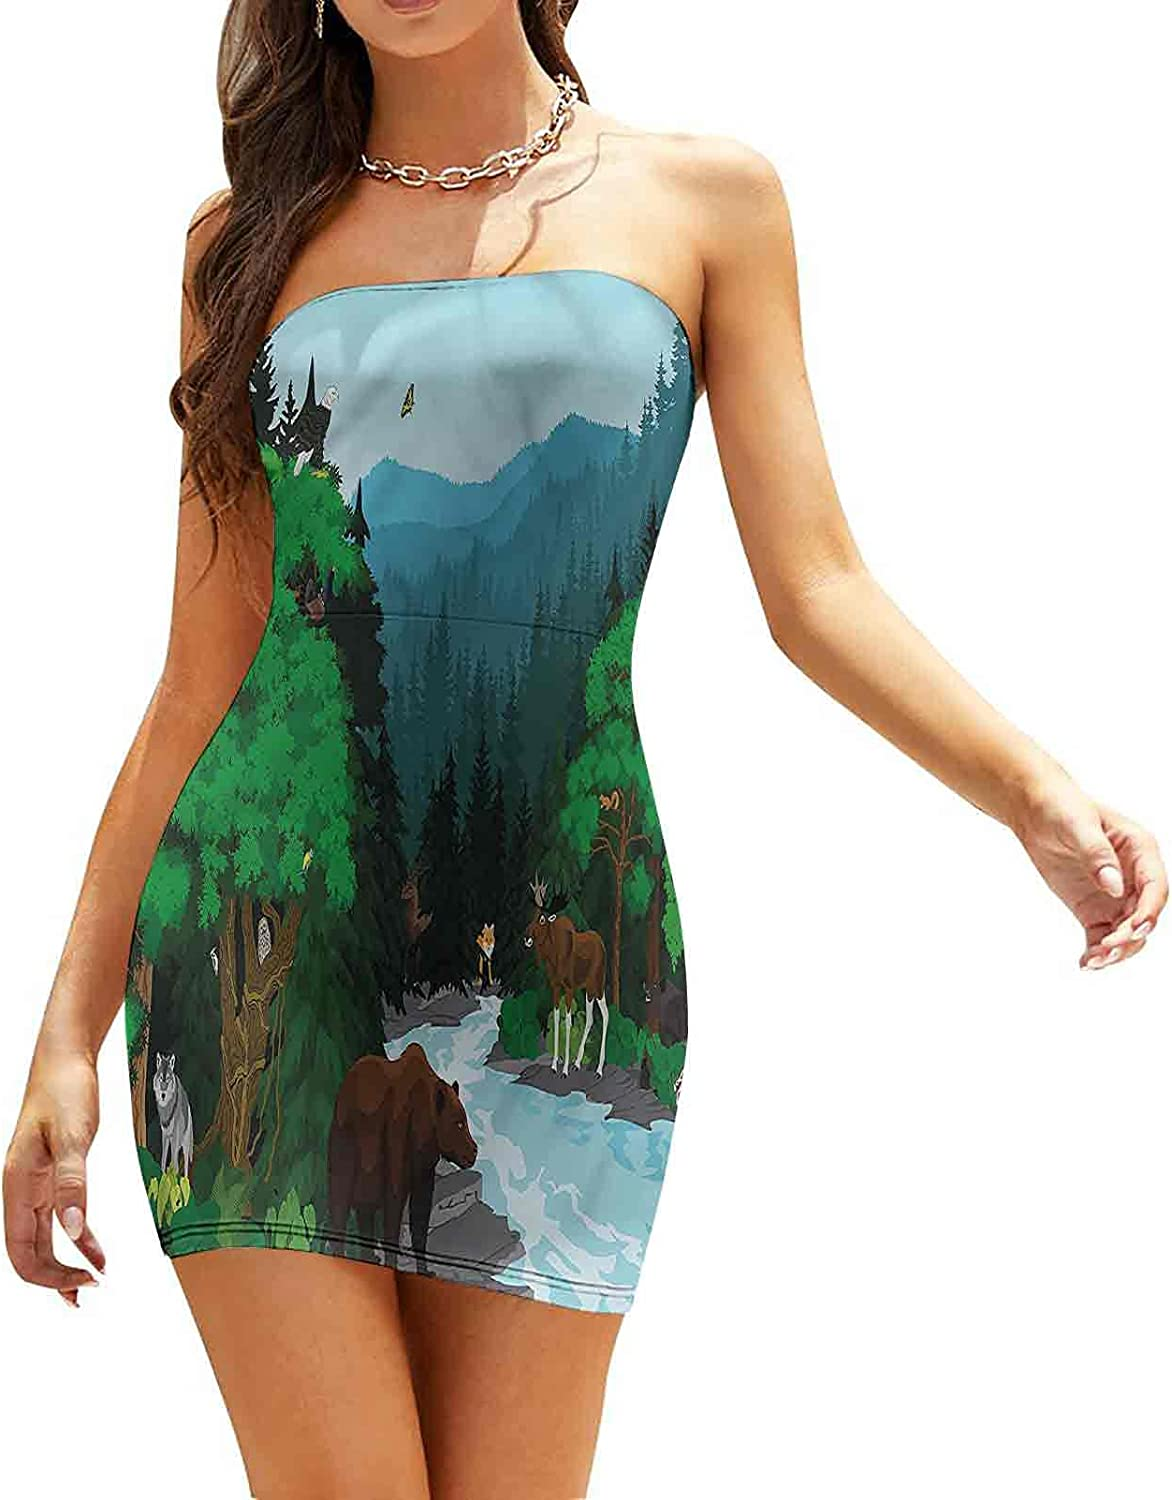 Women's Summer Strapless Dresses Animal Faces with Glasses Dresses